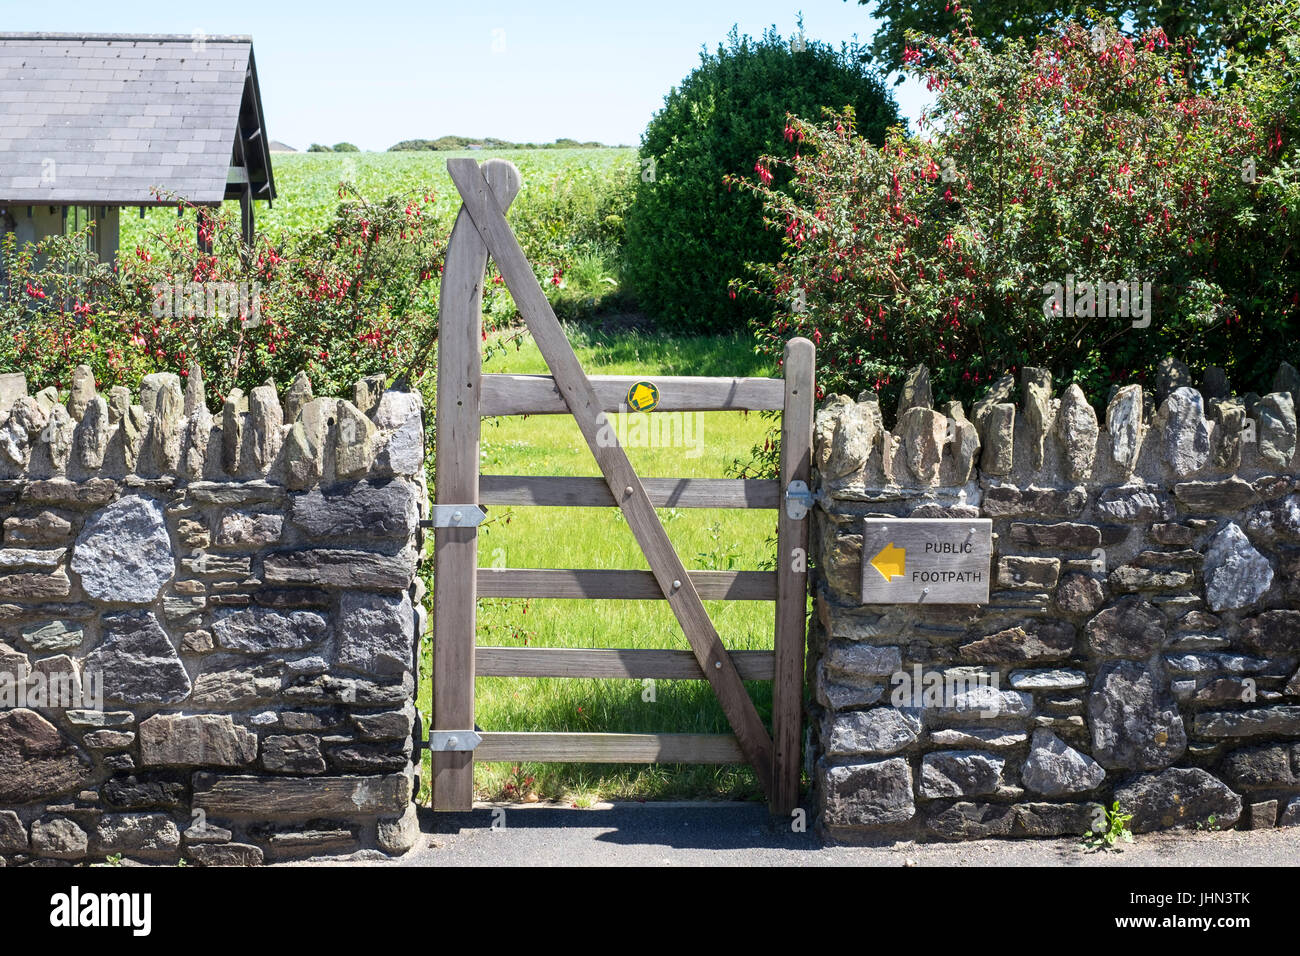 Gate in stone wall with Public Footpath right of way - Stock Image